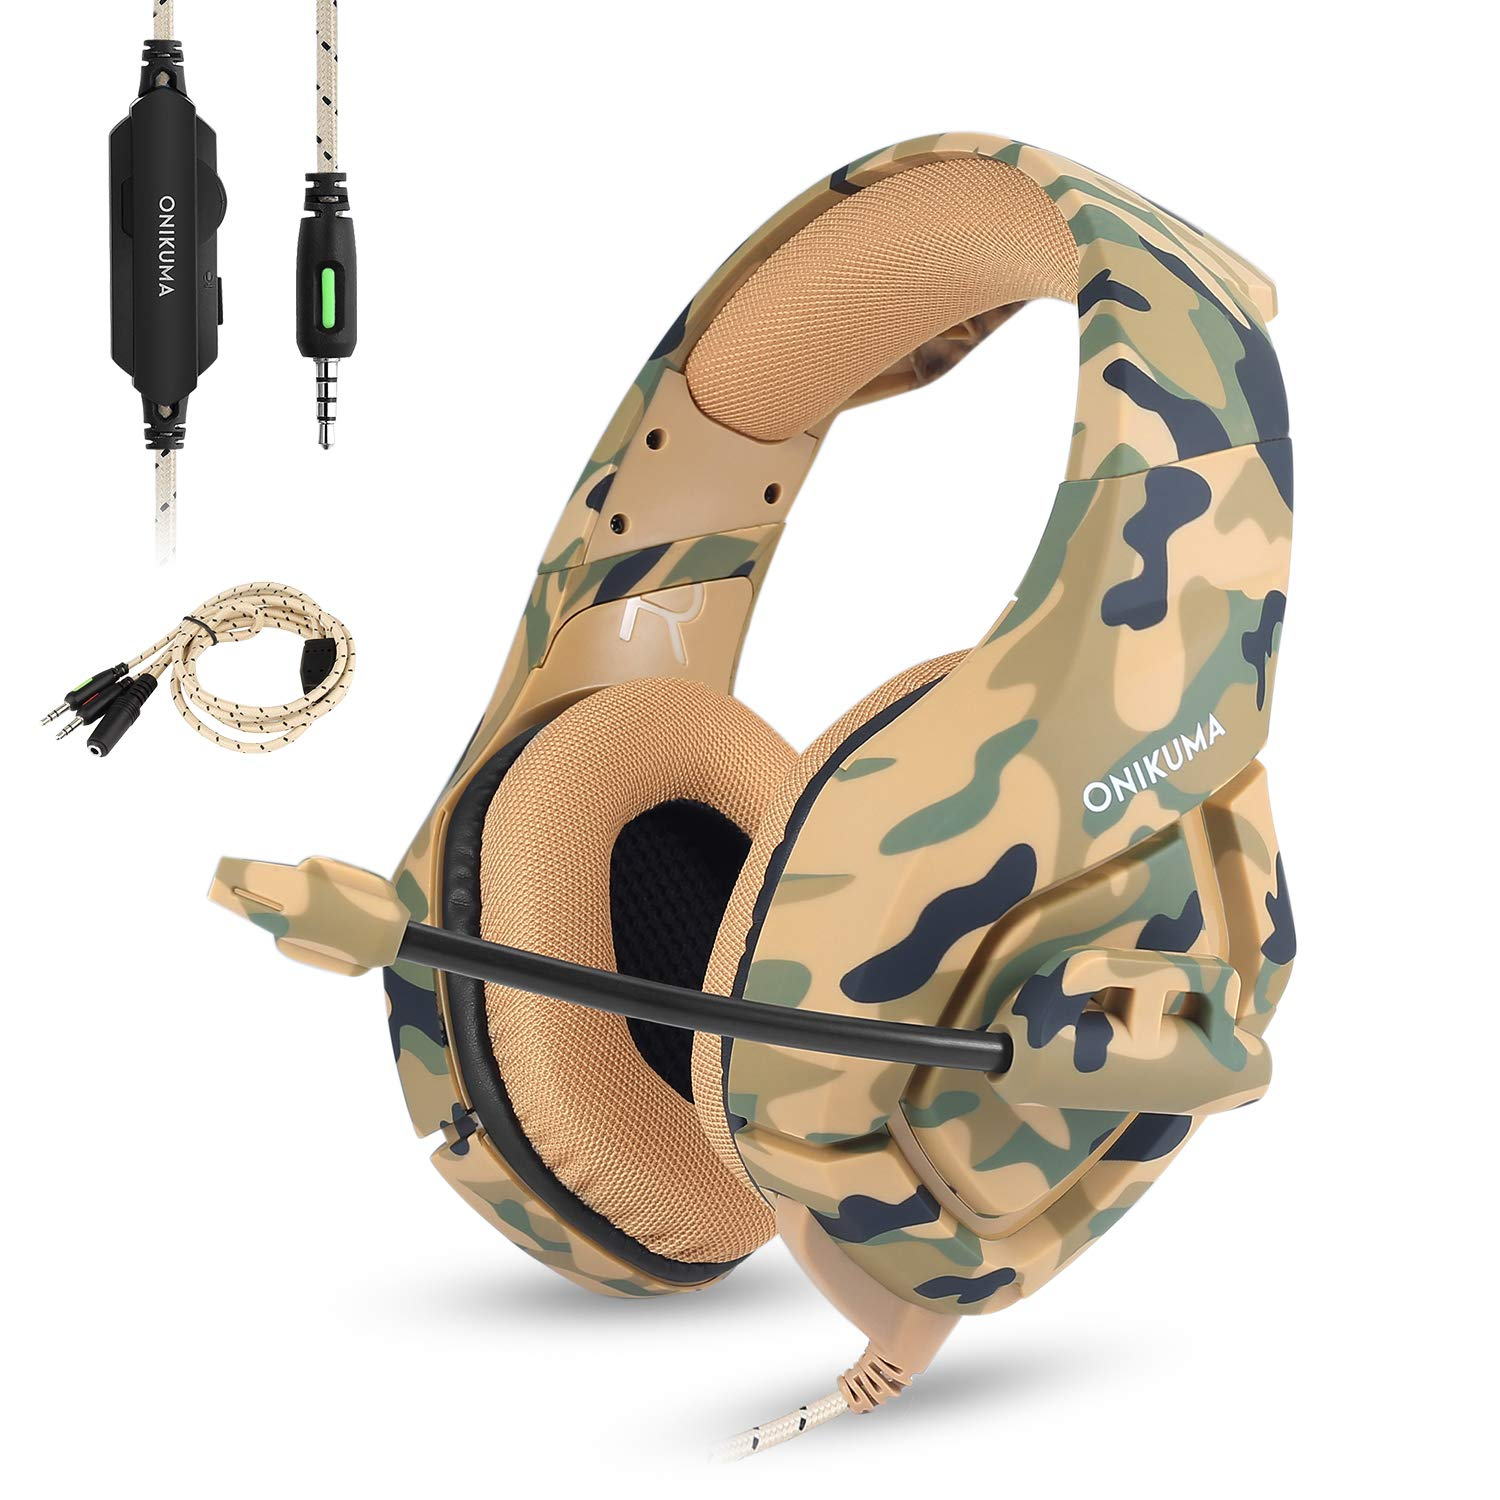 Gaming Headset as Xbox One Headset PS4 Headset Mic Cell Phone PC(Camo Headset),Stereo 3.5mm Over Ear Headphones Noise Canceling Volume Control (Camouflage)